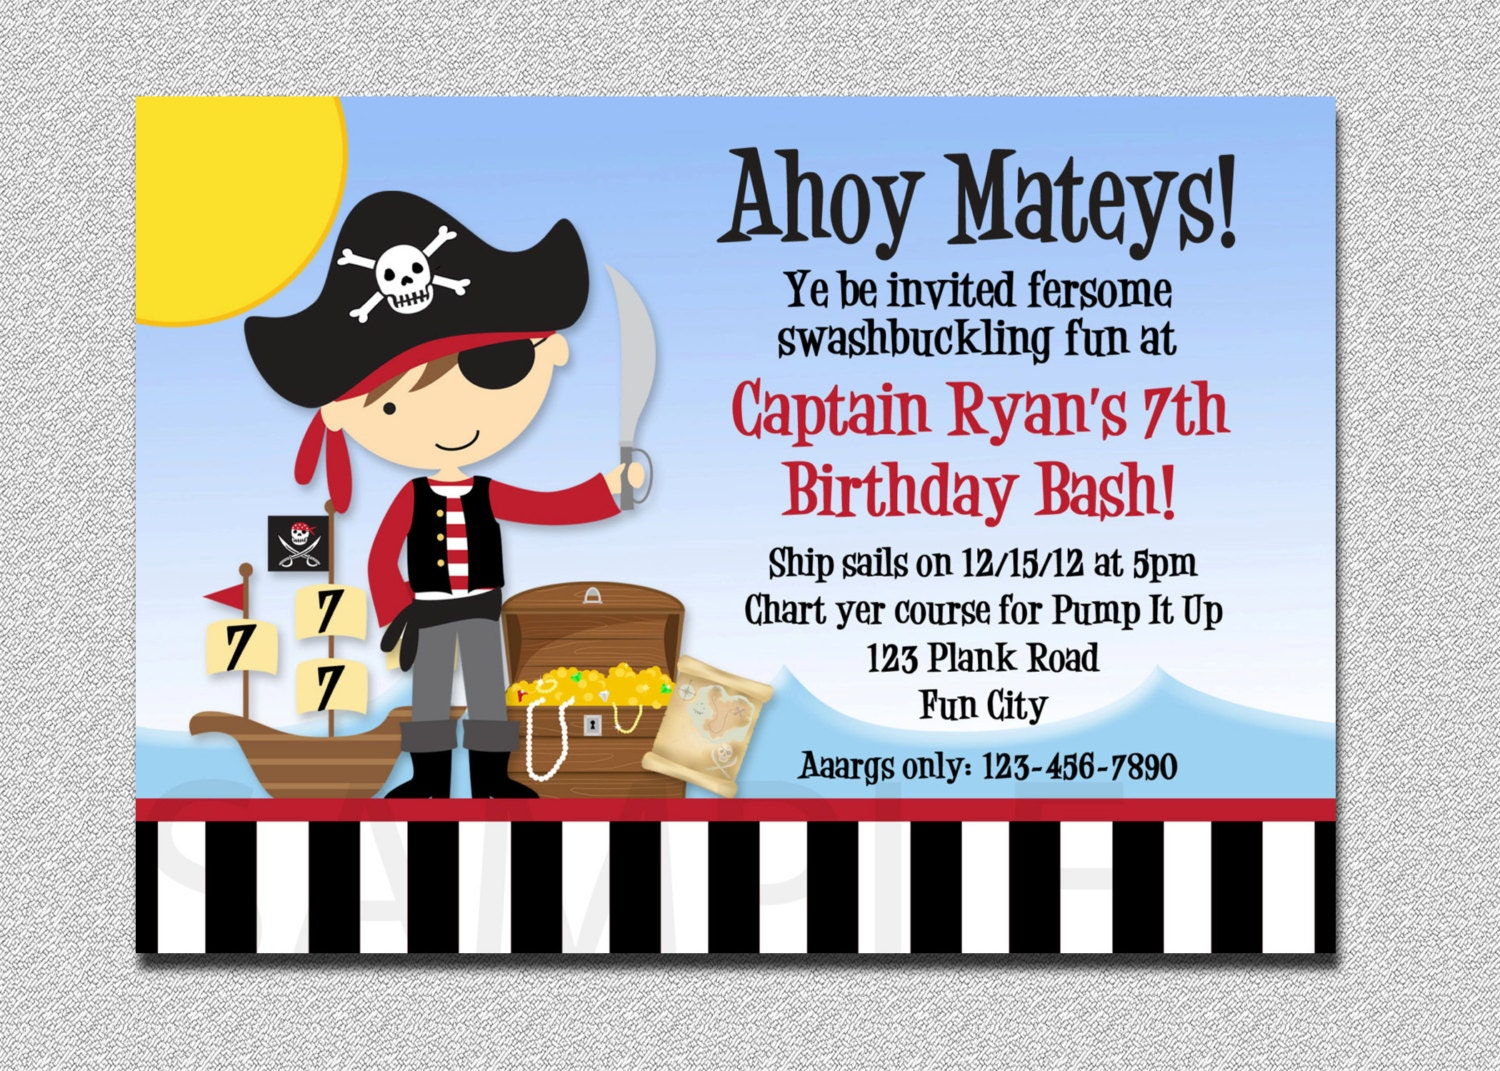 pirates party invitation charity birthday cards, party invitations